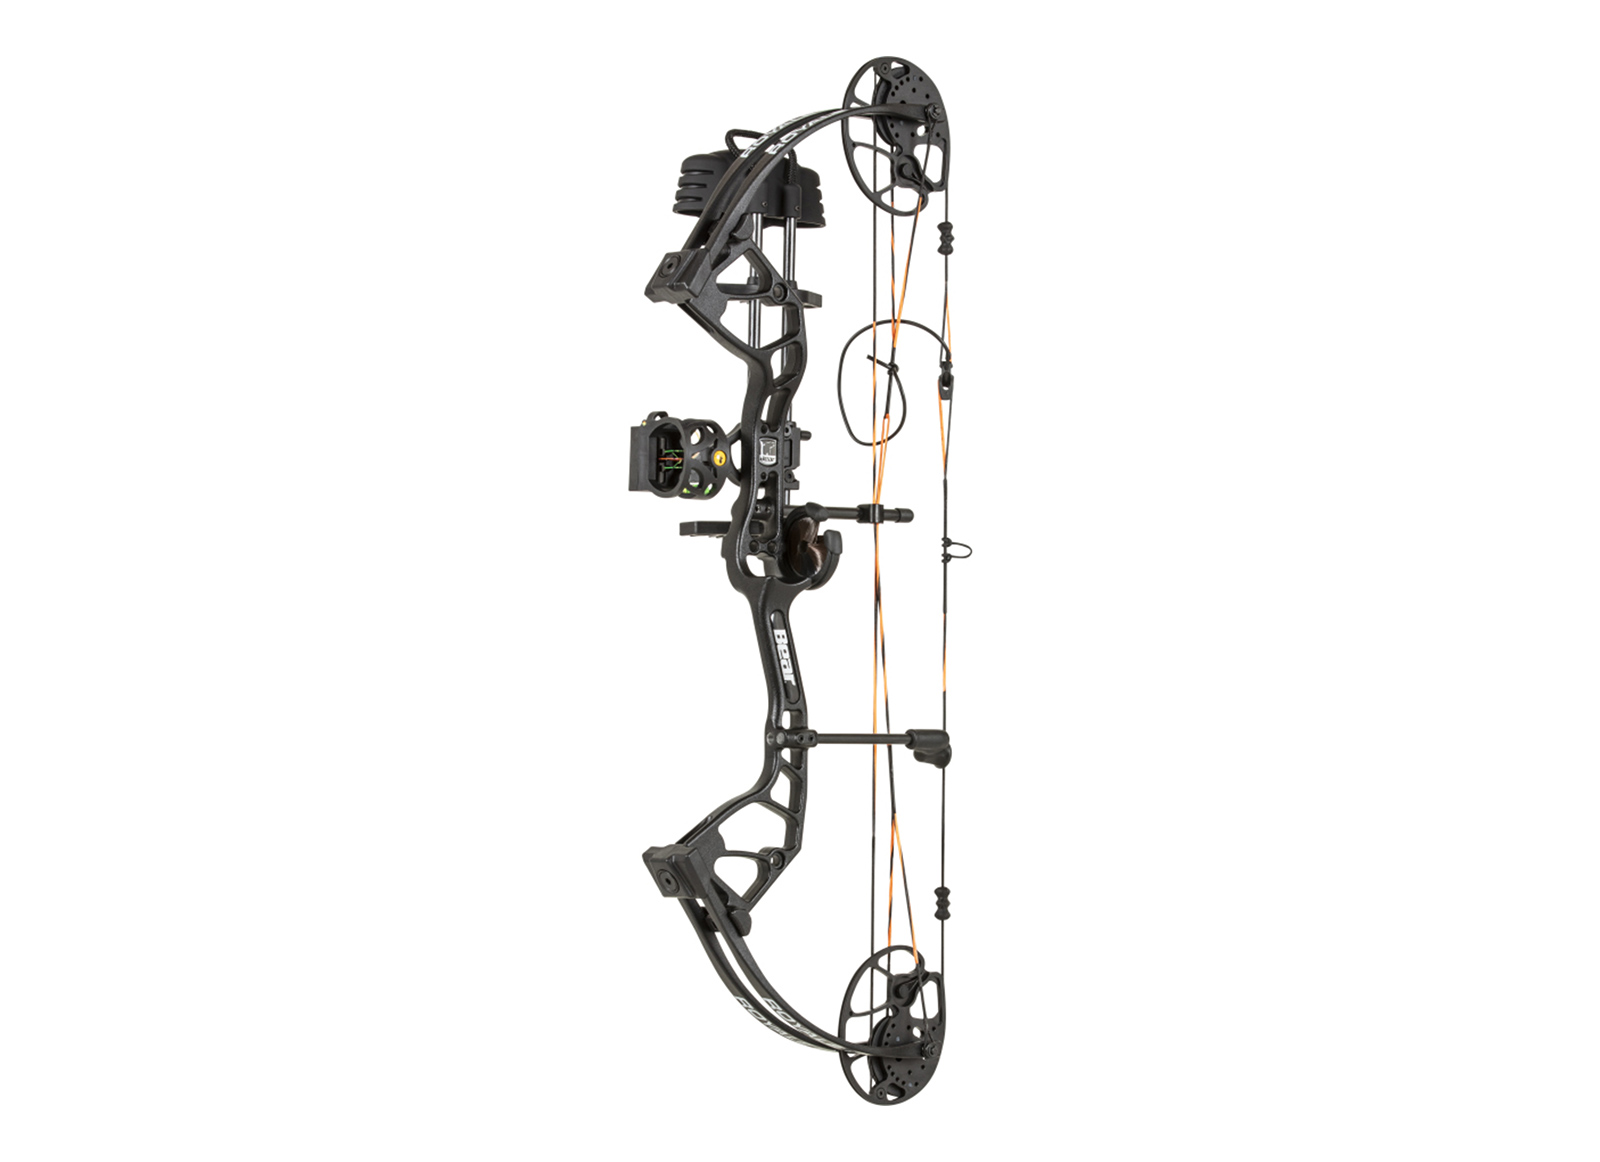 BEAR ARCHERY COMPOUND PACKAGE ROYALE 2020